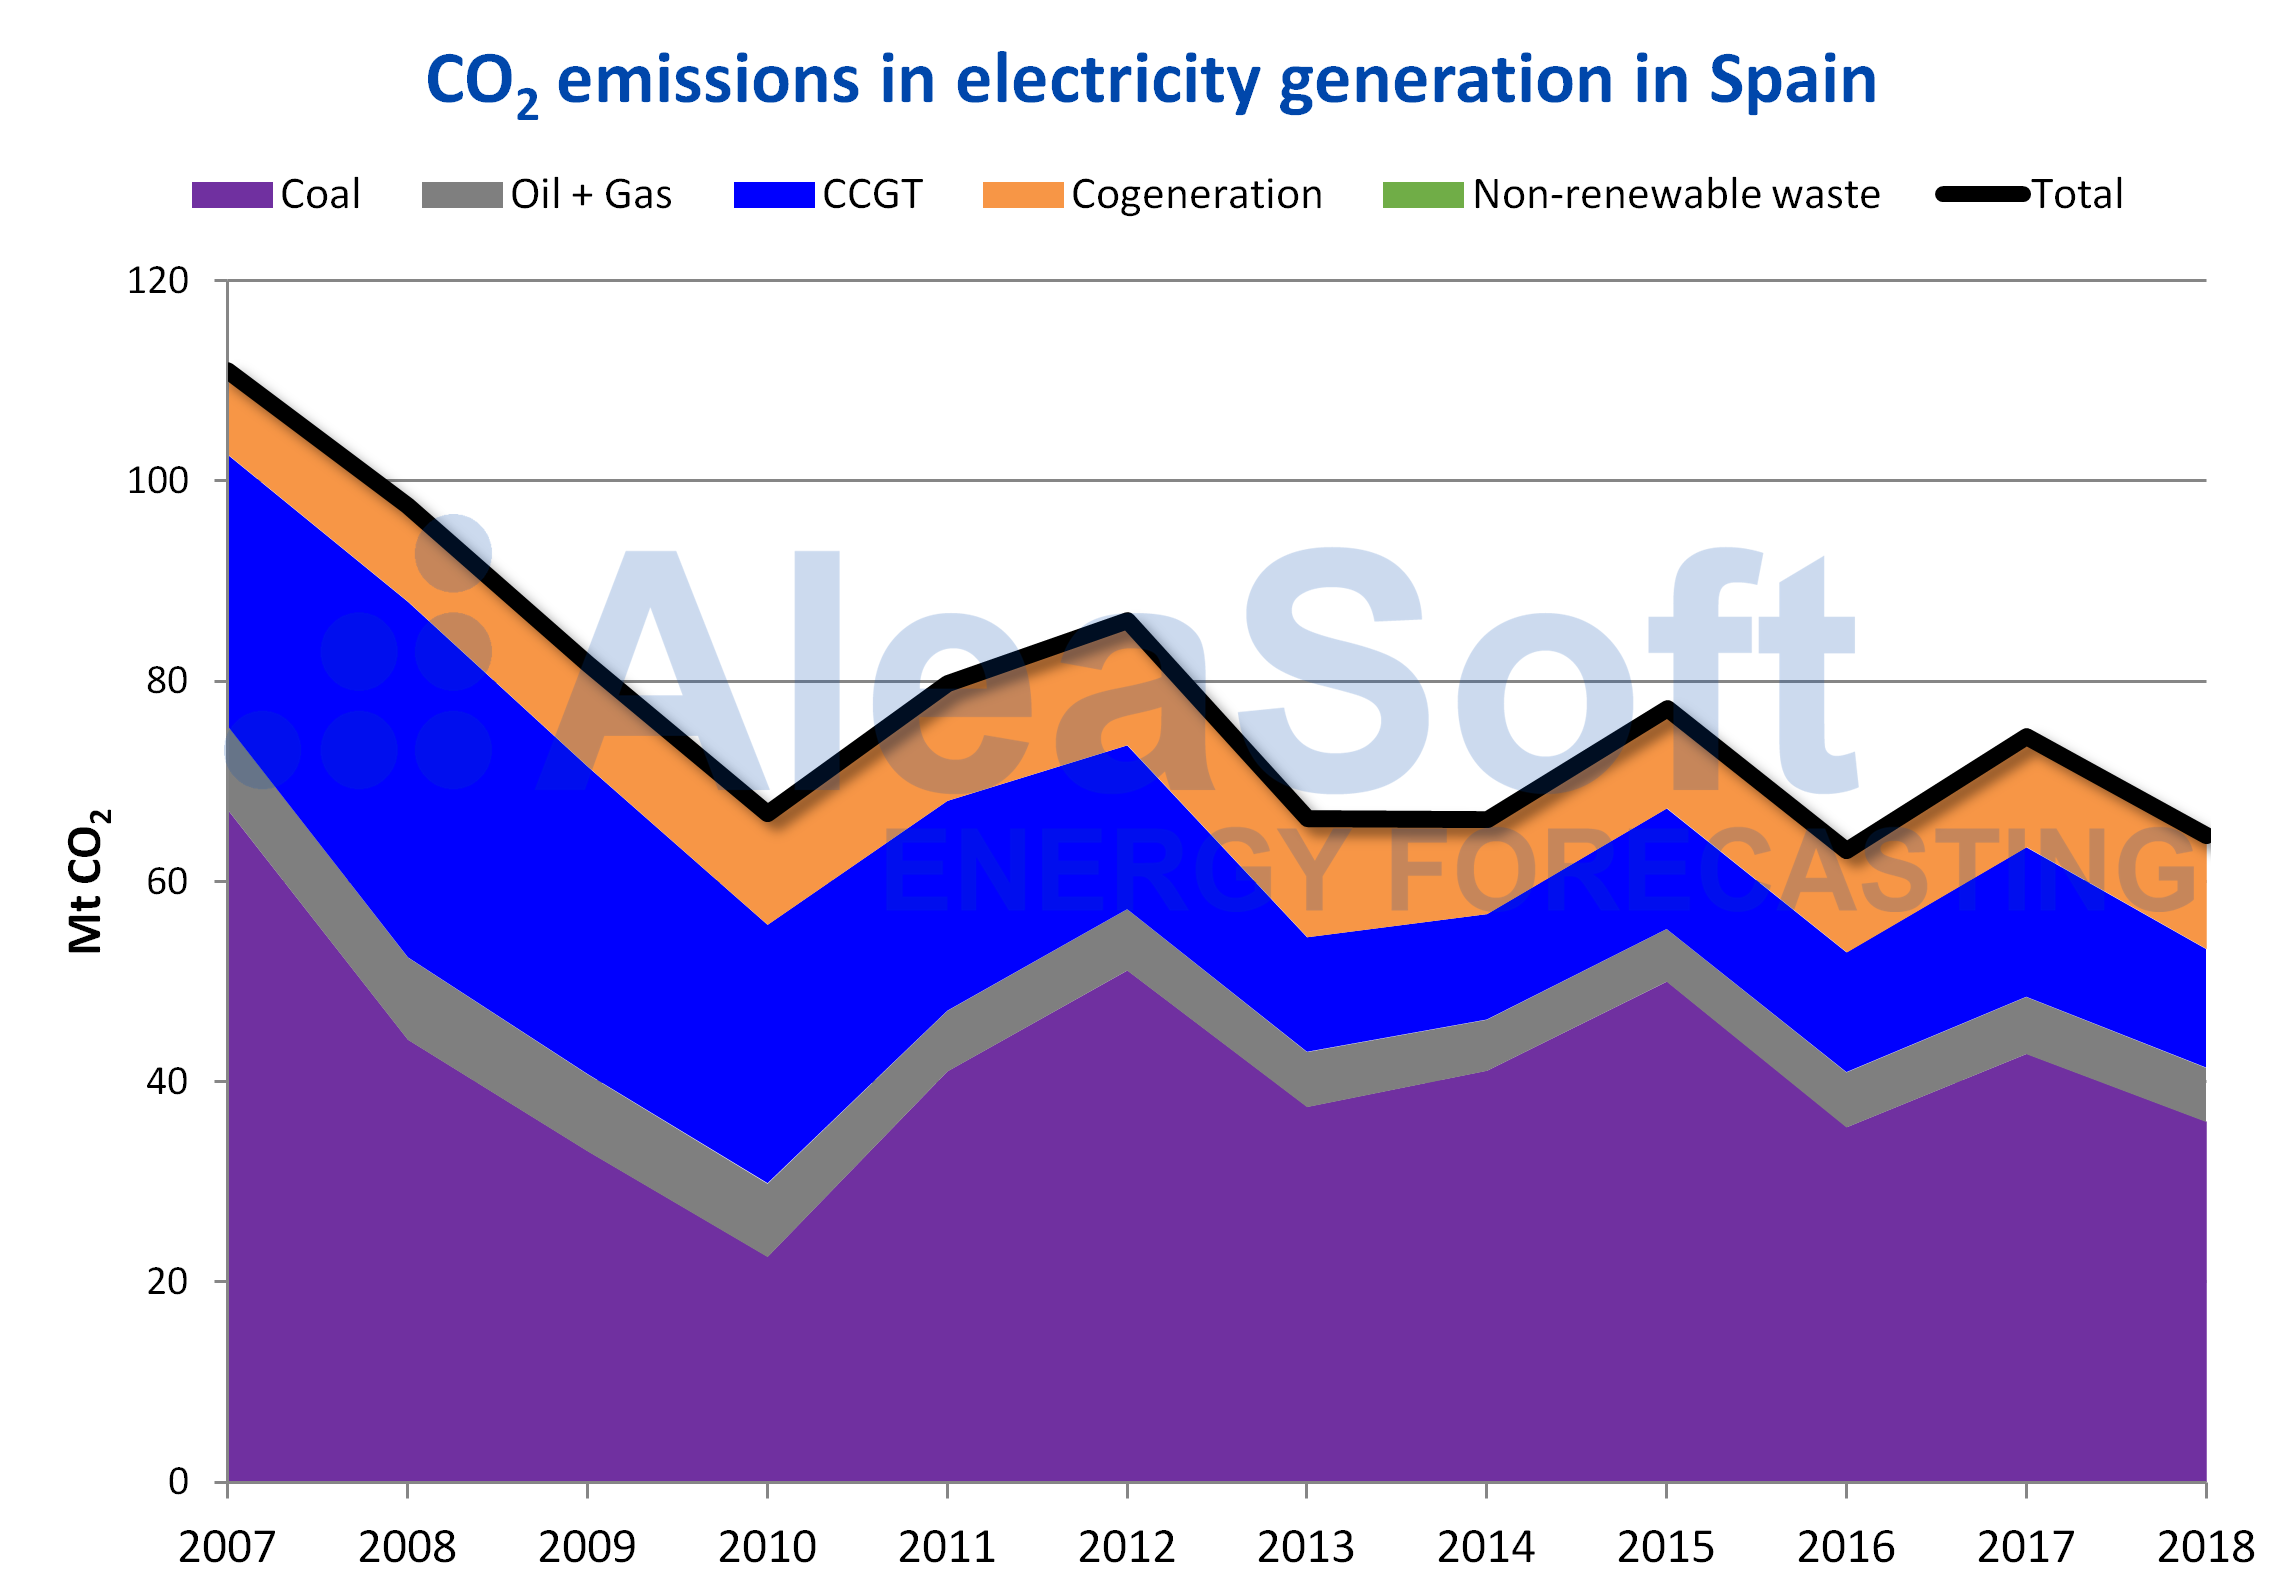 AleaSoft - CO2 emissions electricity generation Spain